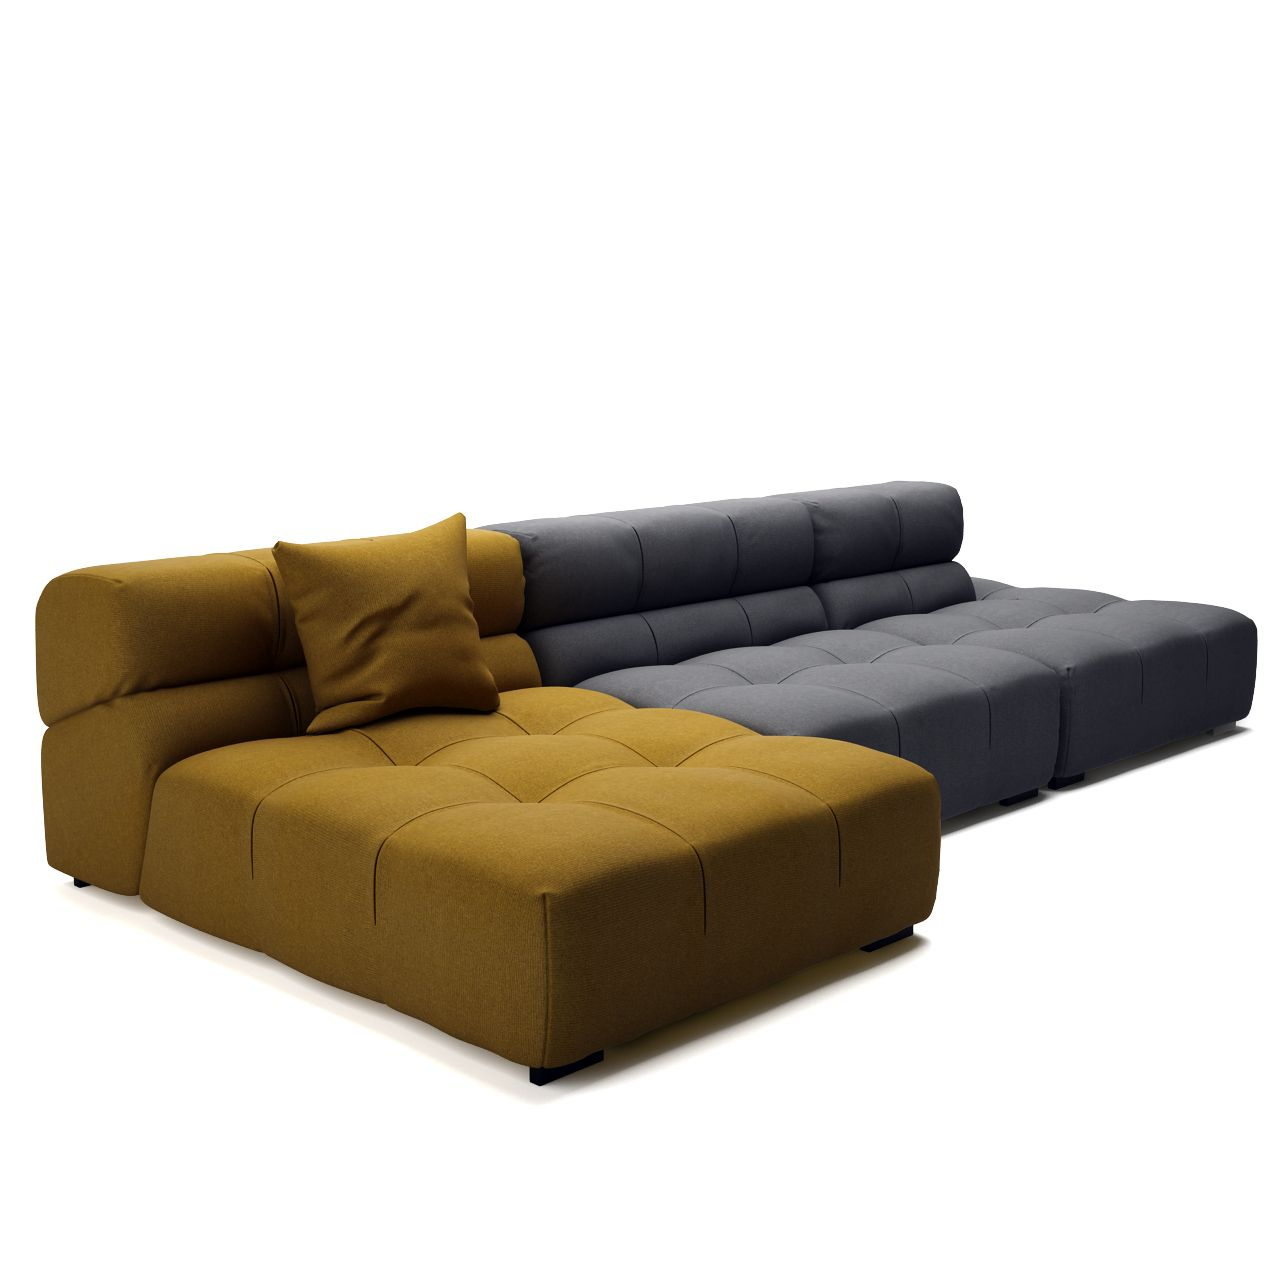 Free 3d Model Tufty Time 15 Sofa By B Amp B Italia Http